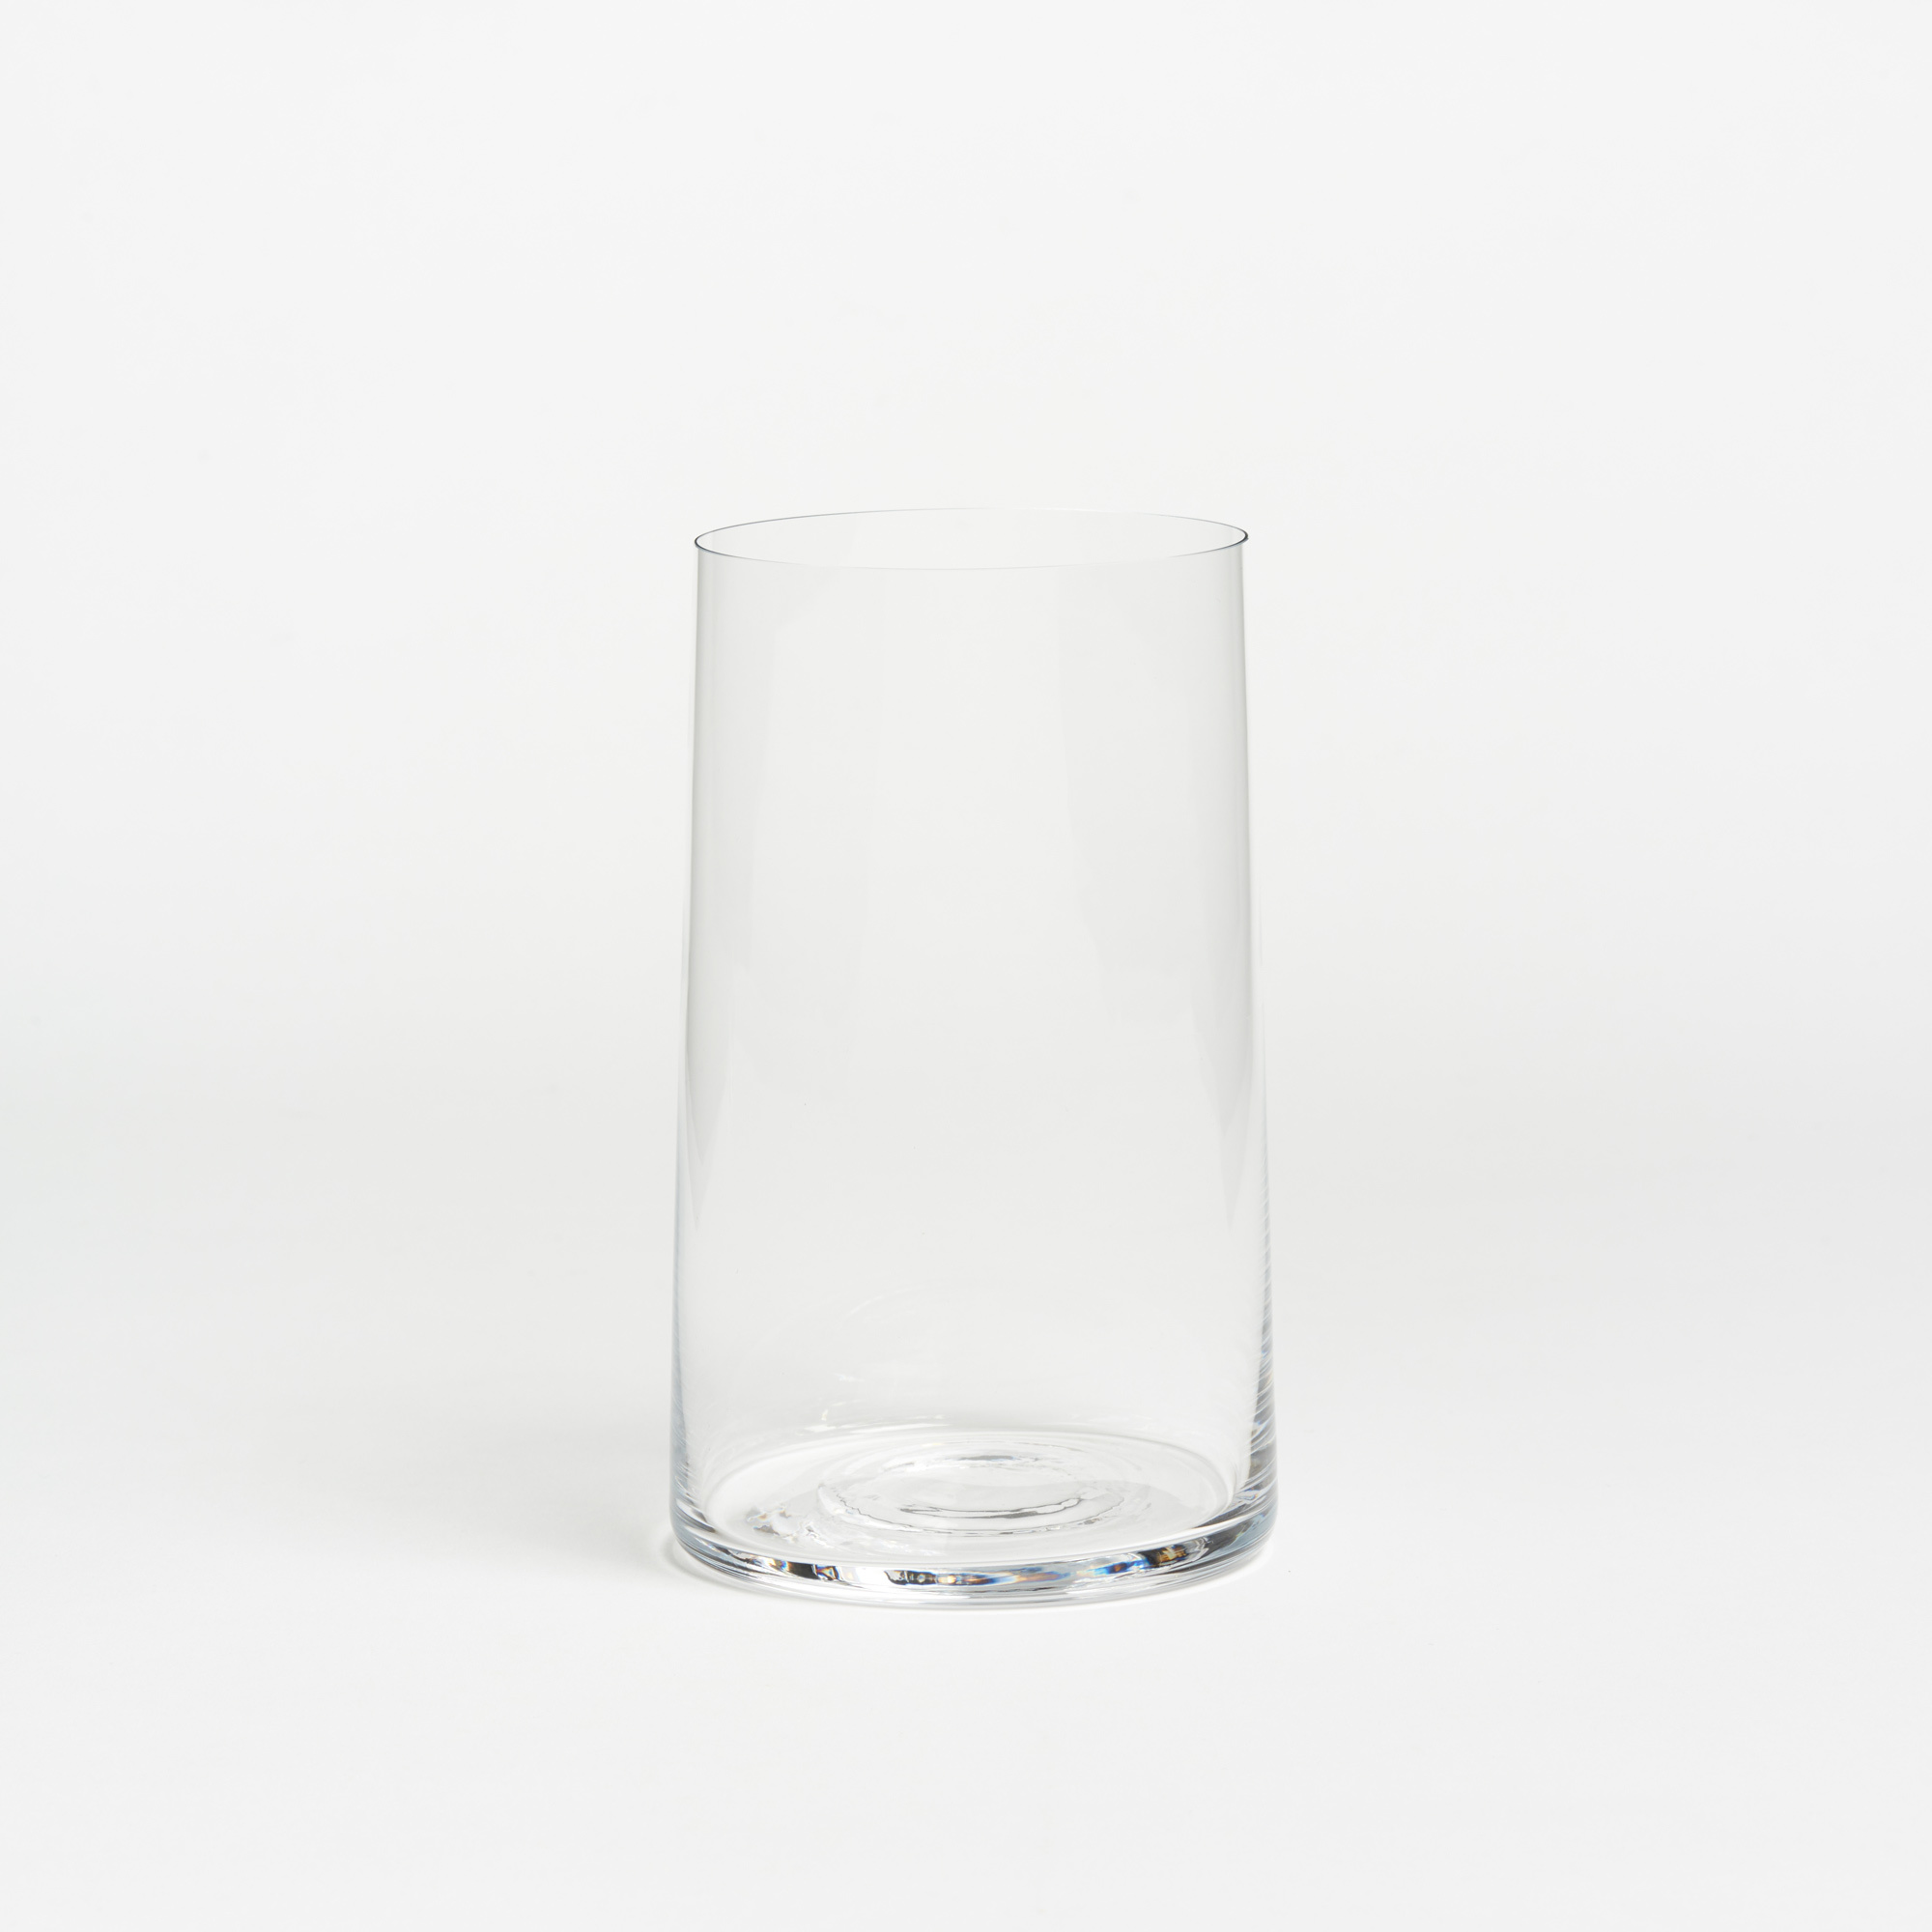 Glassware Vase Simple Swedish Crystal Canister Forget Me Not Vase Simple Swedish Crystal Canister Forget Me Not Vase